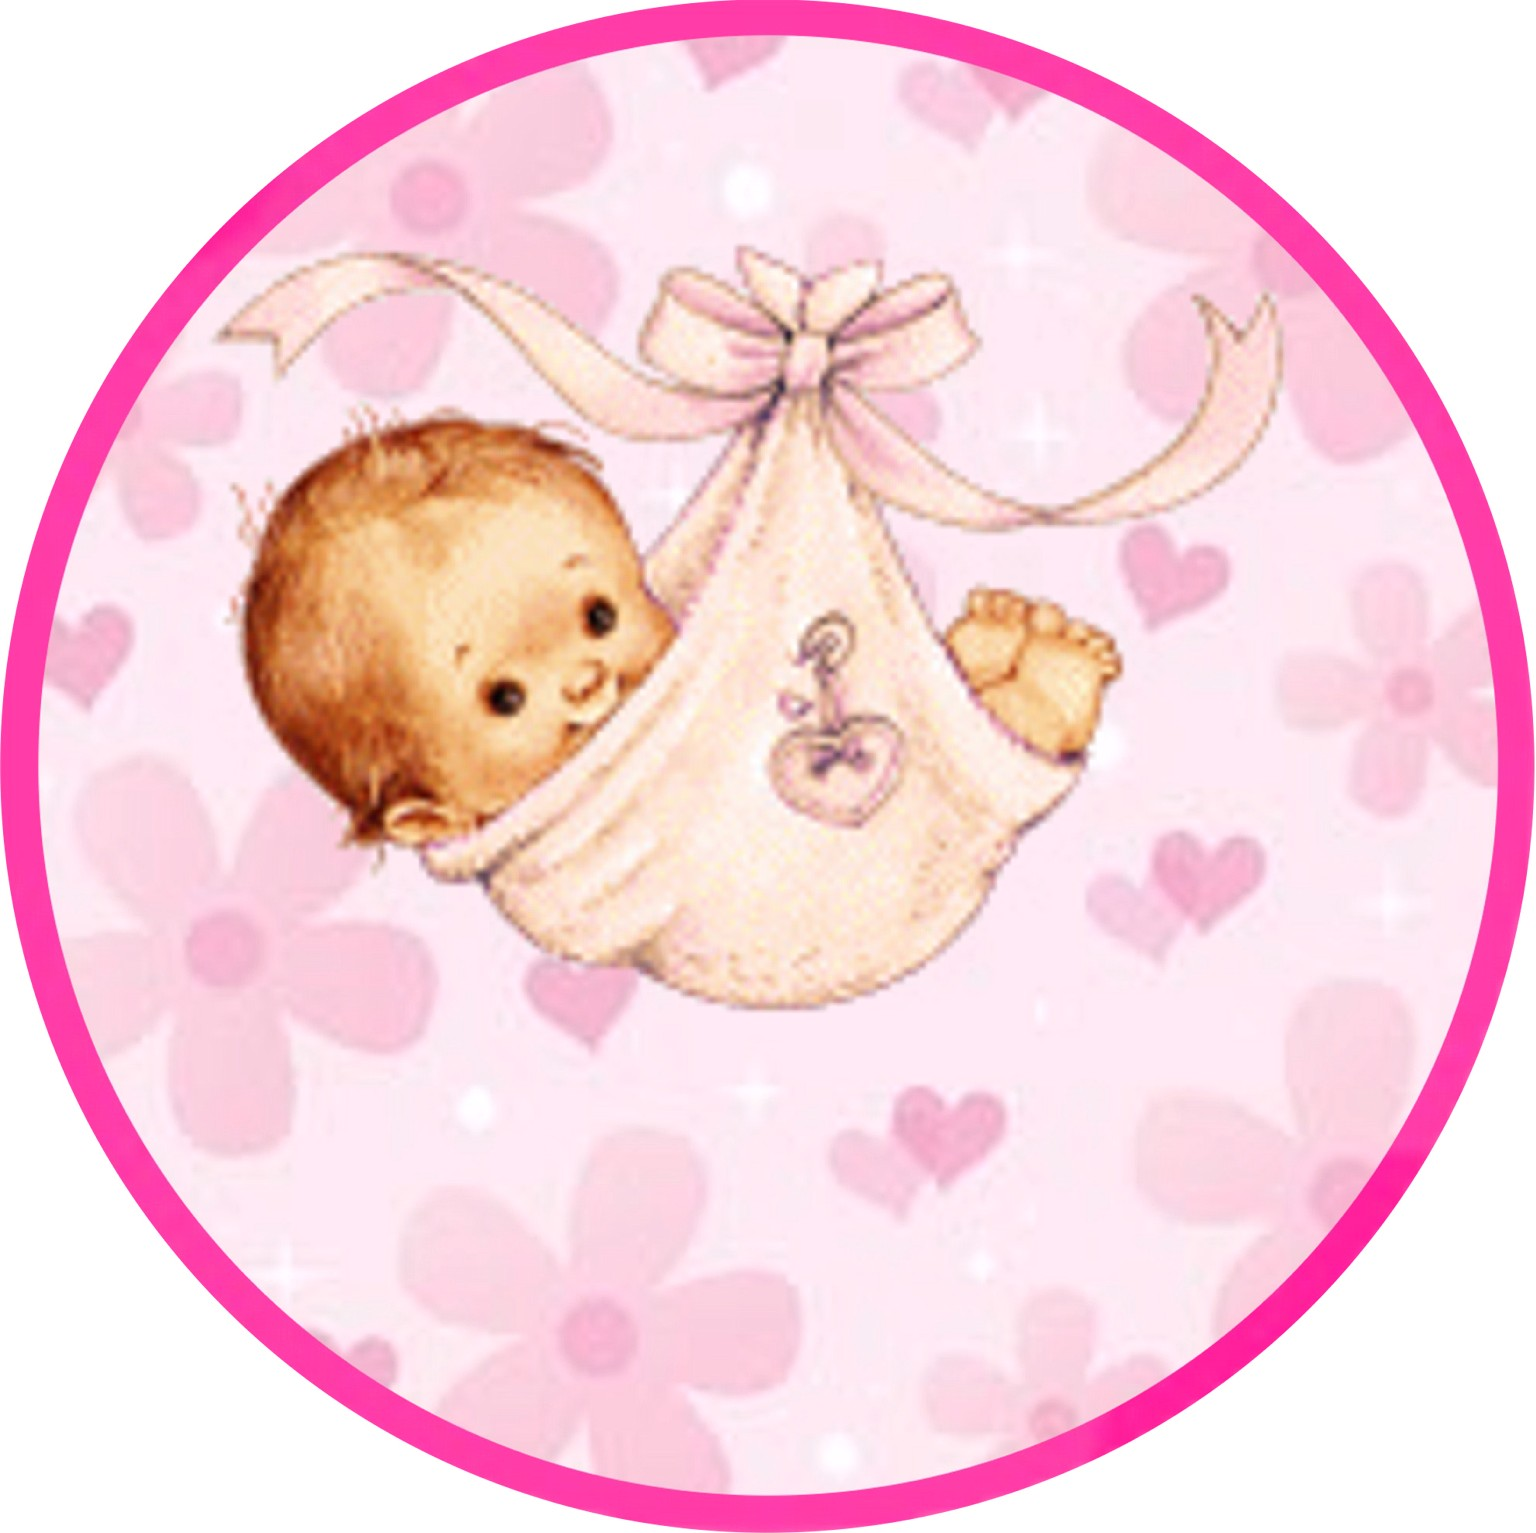 Baby shower ni a clipart picture library download Top 5 Baby Shower Messages And Quotes | Playbuzz picture library download